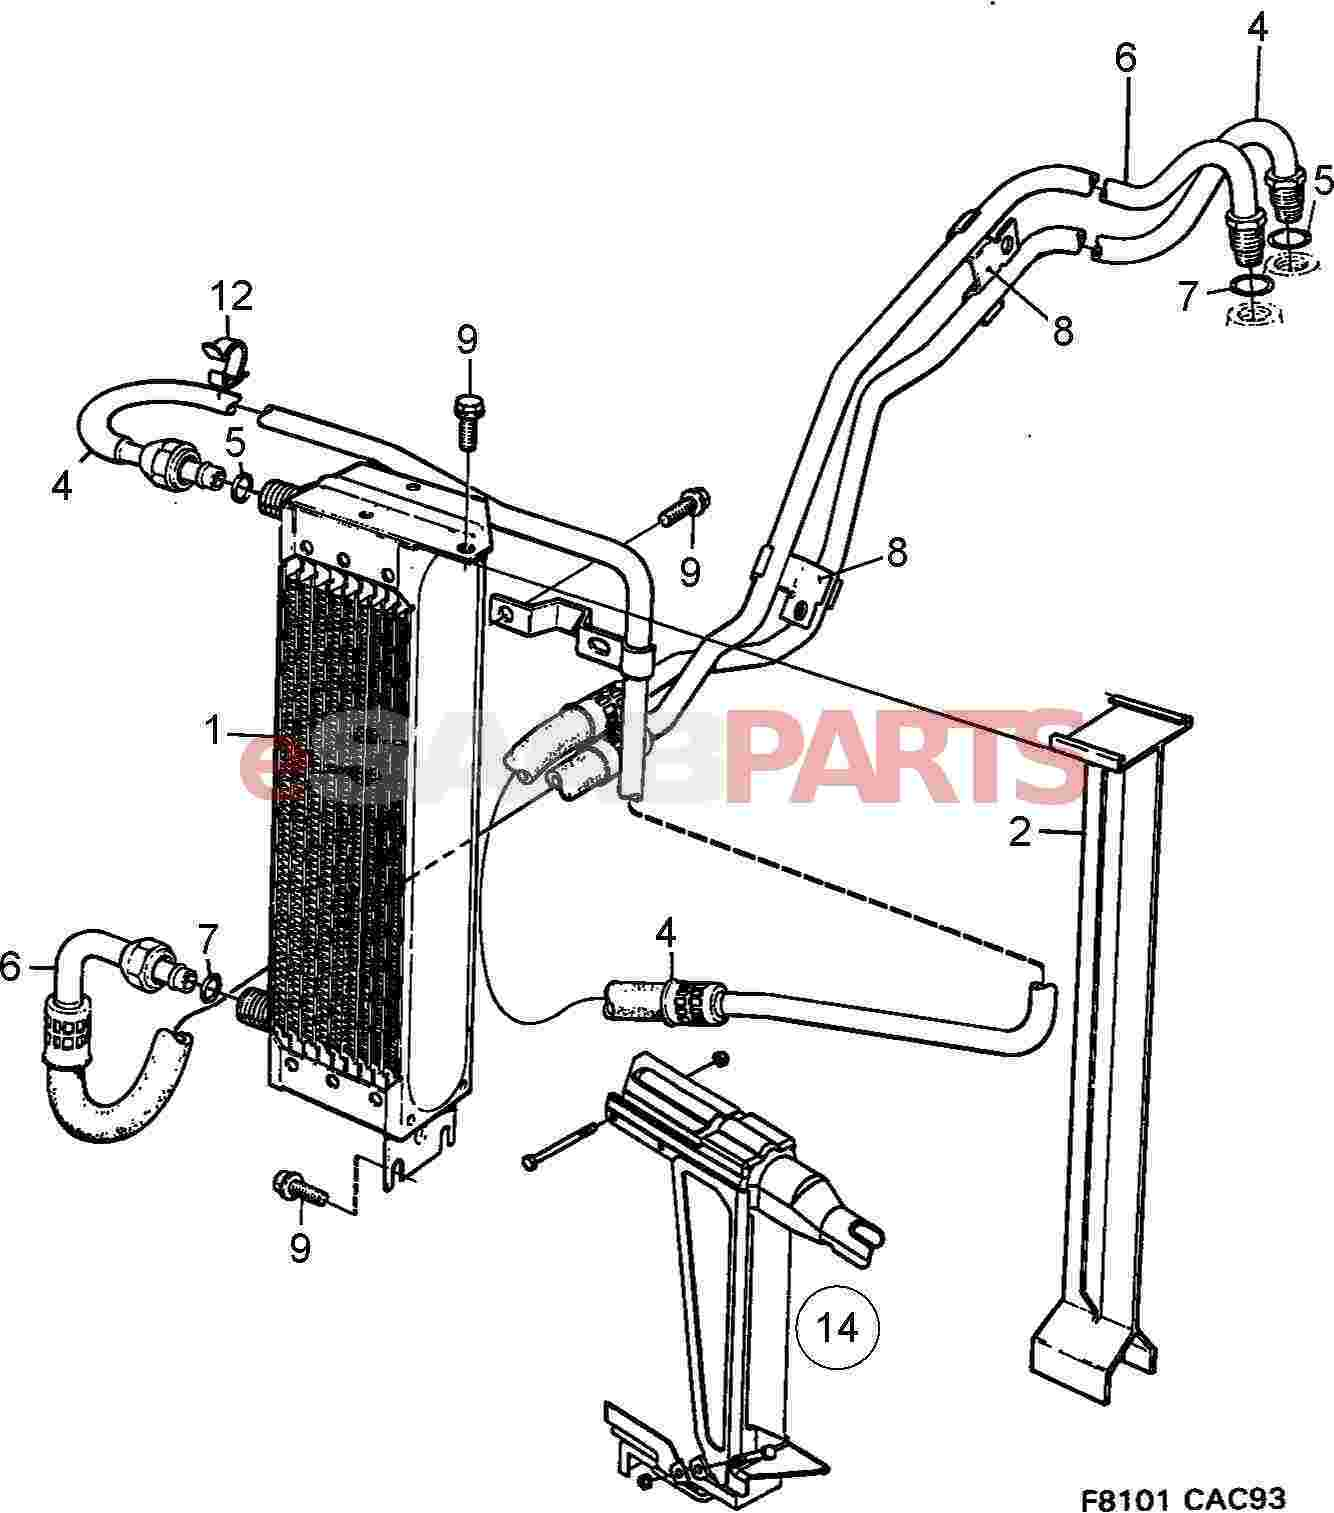 4284212 saab hose genuine saab parts from esaabparts com rh esaabparts com Saab Parts Diagram Saab 9-3 Engine Diagram